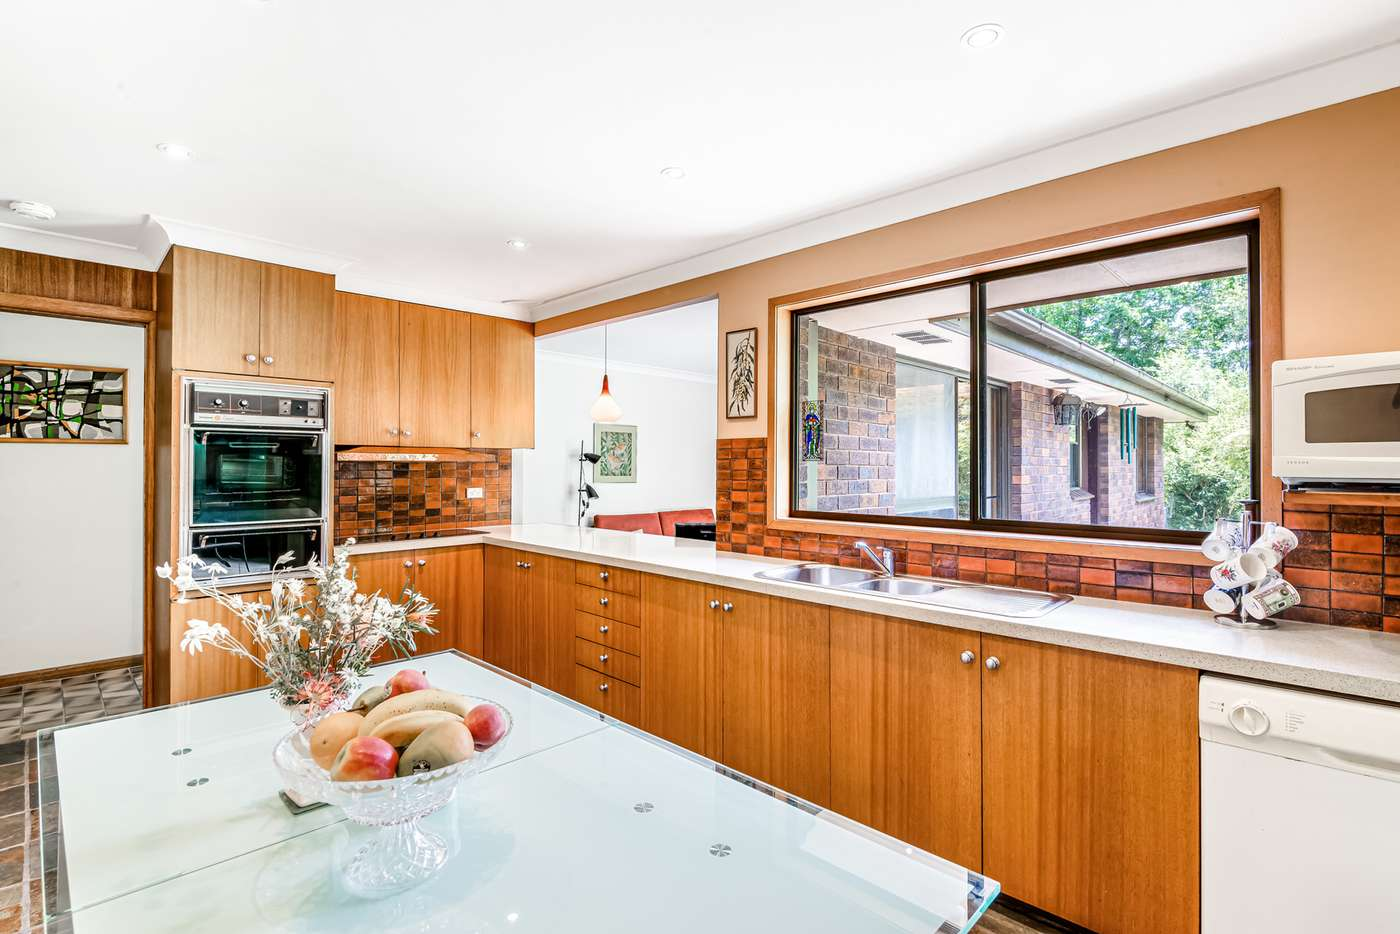 Fifth view of Homely house listing, 52 Wyoming Road, Dural NSW 2158